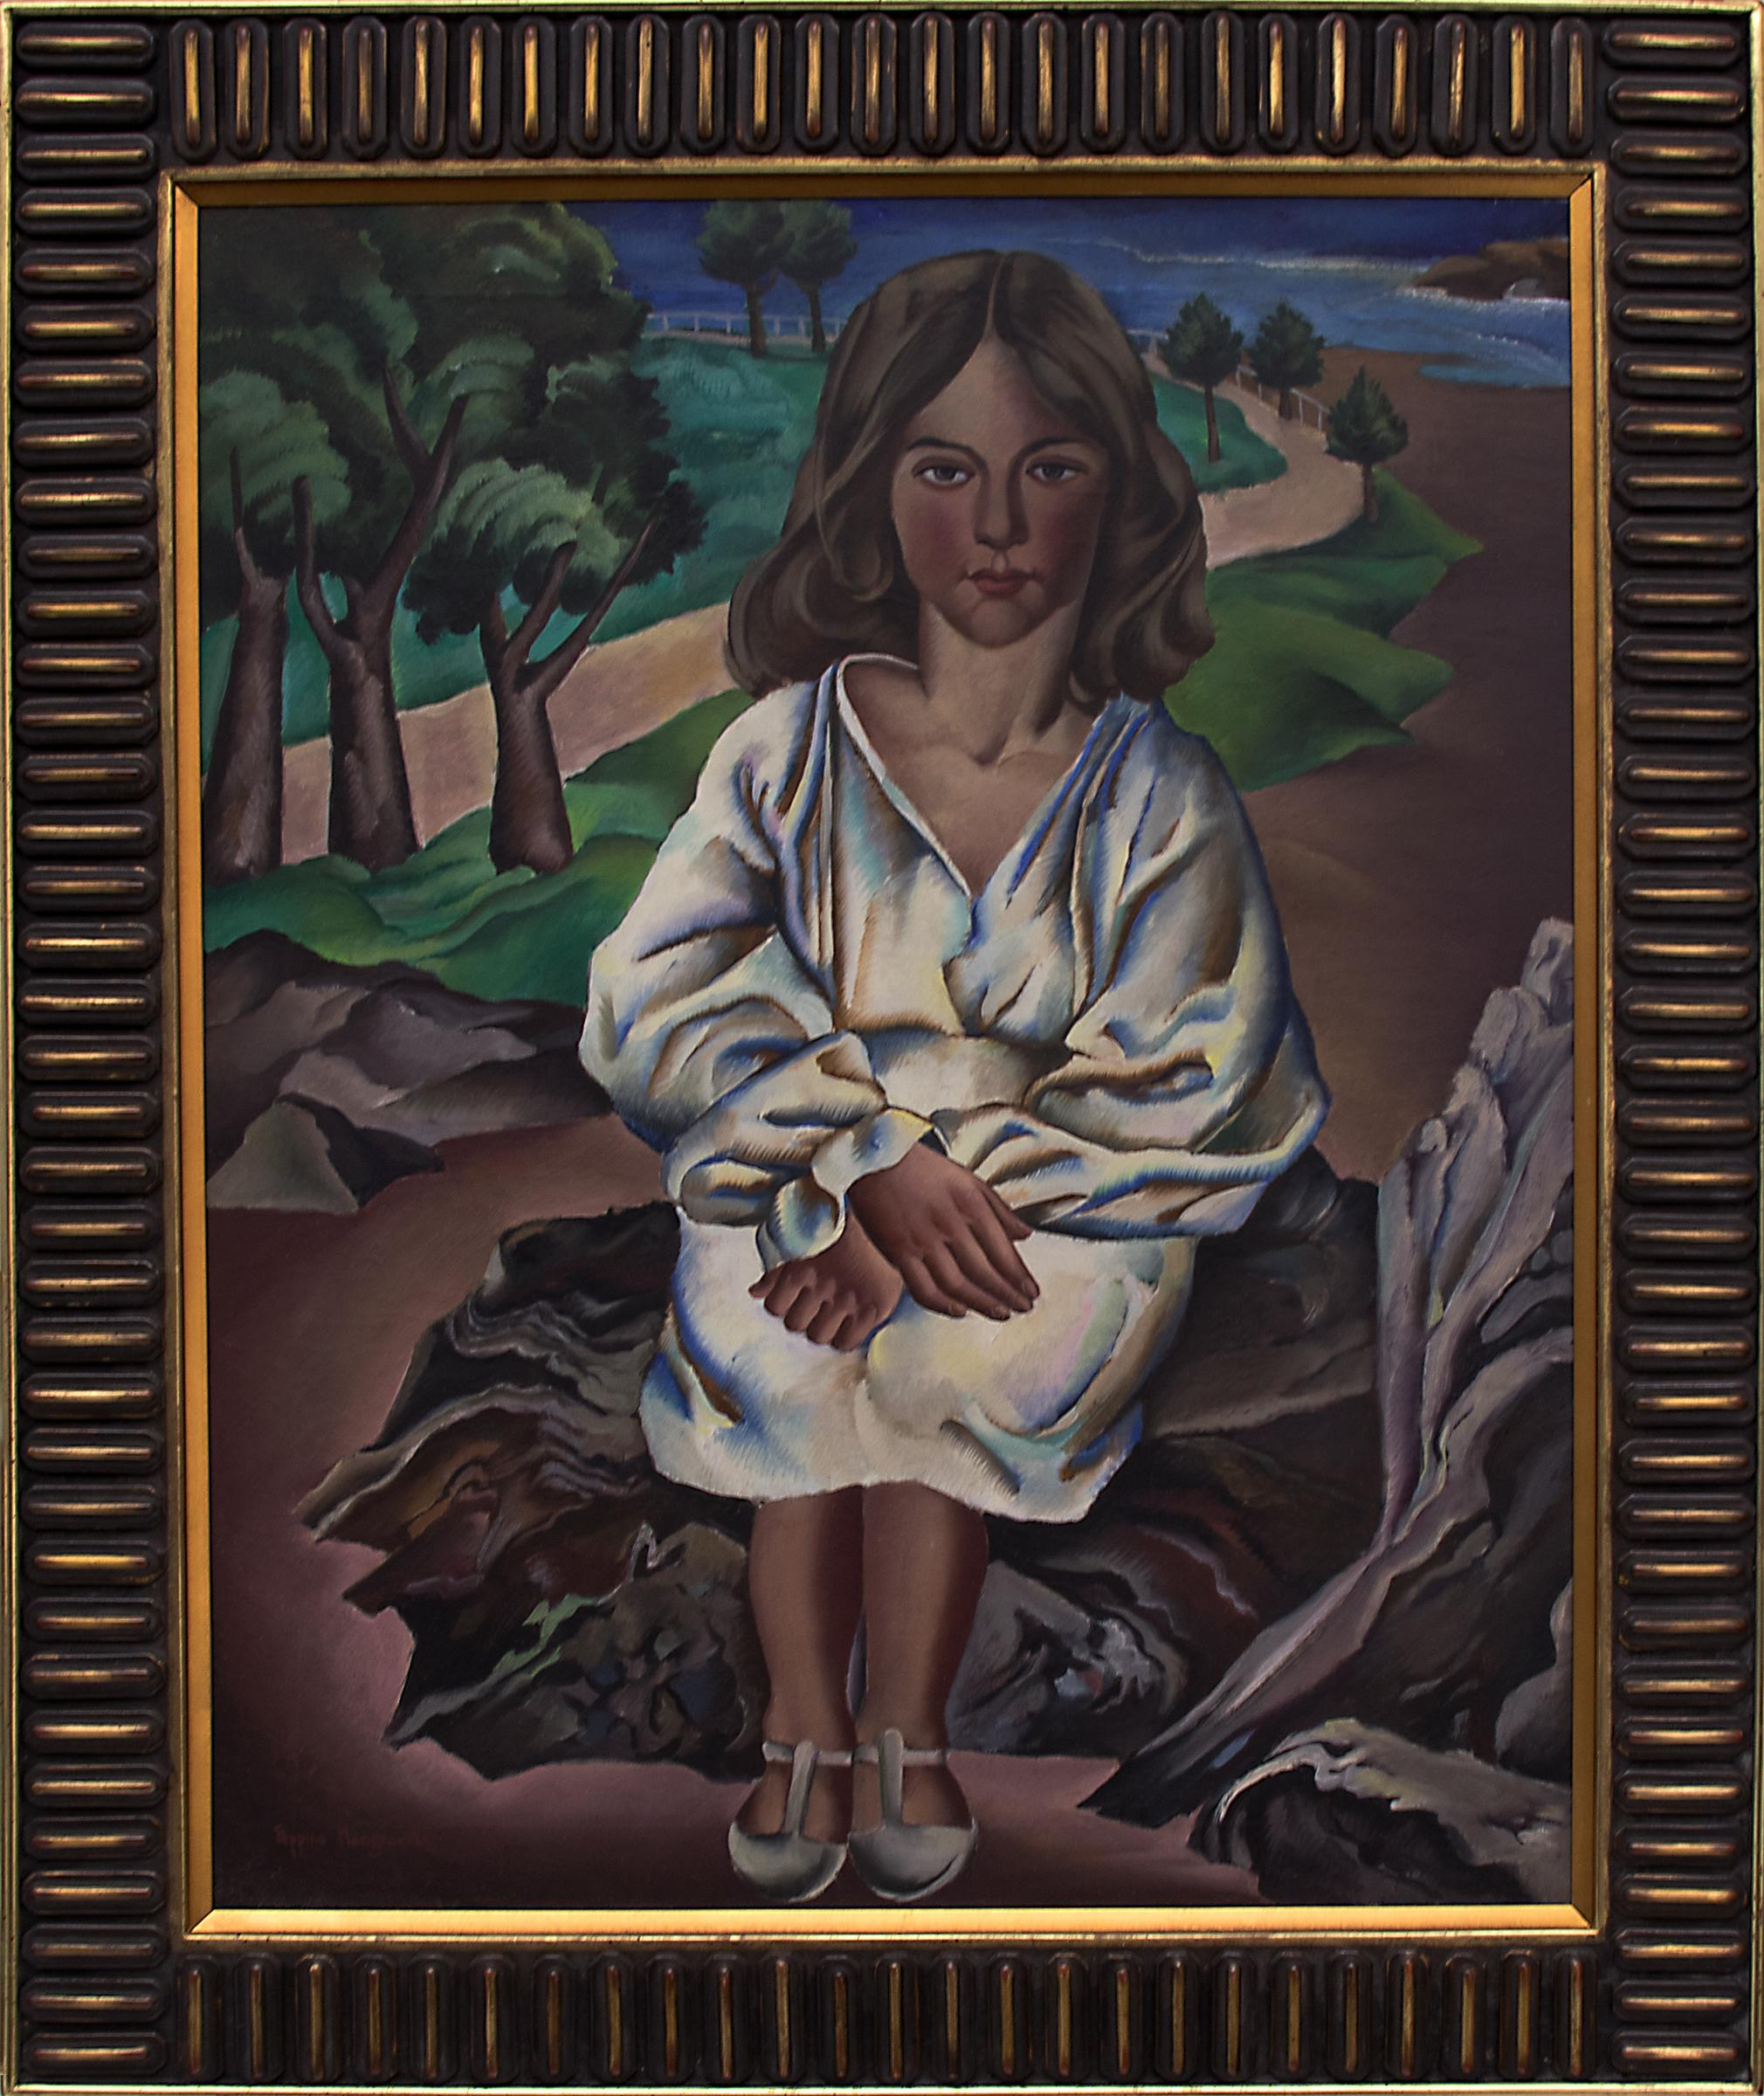 Dora (Modernist Portrait of a Girl at the Seaside with Trees & Rocks)